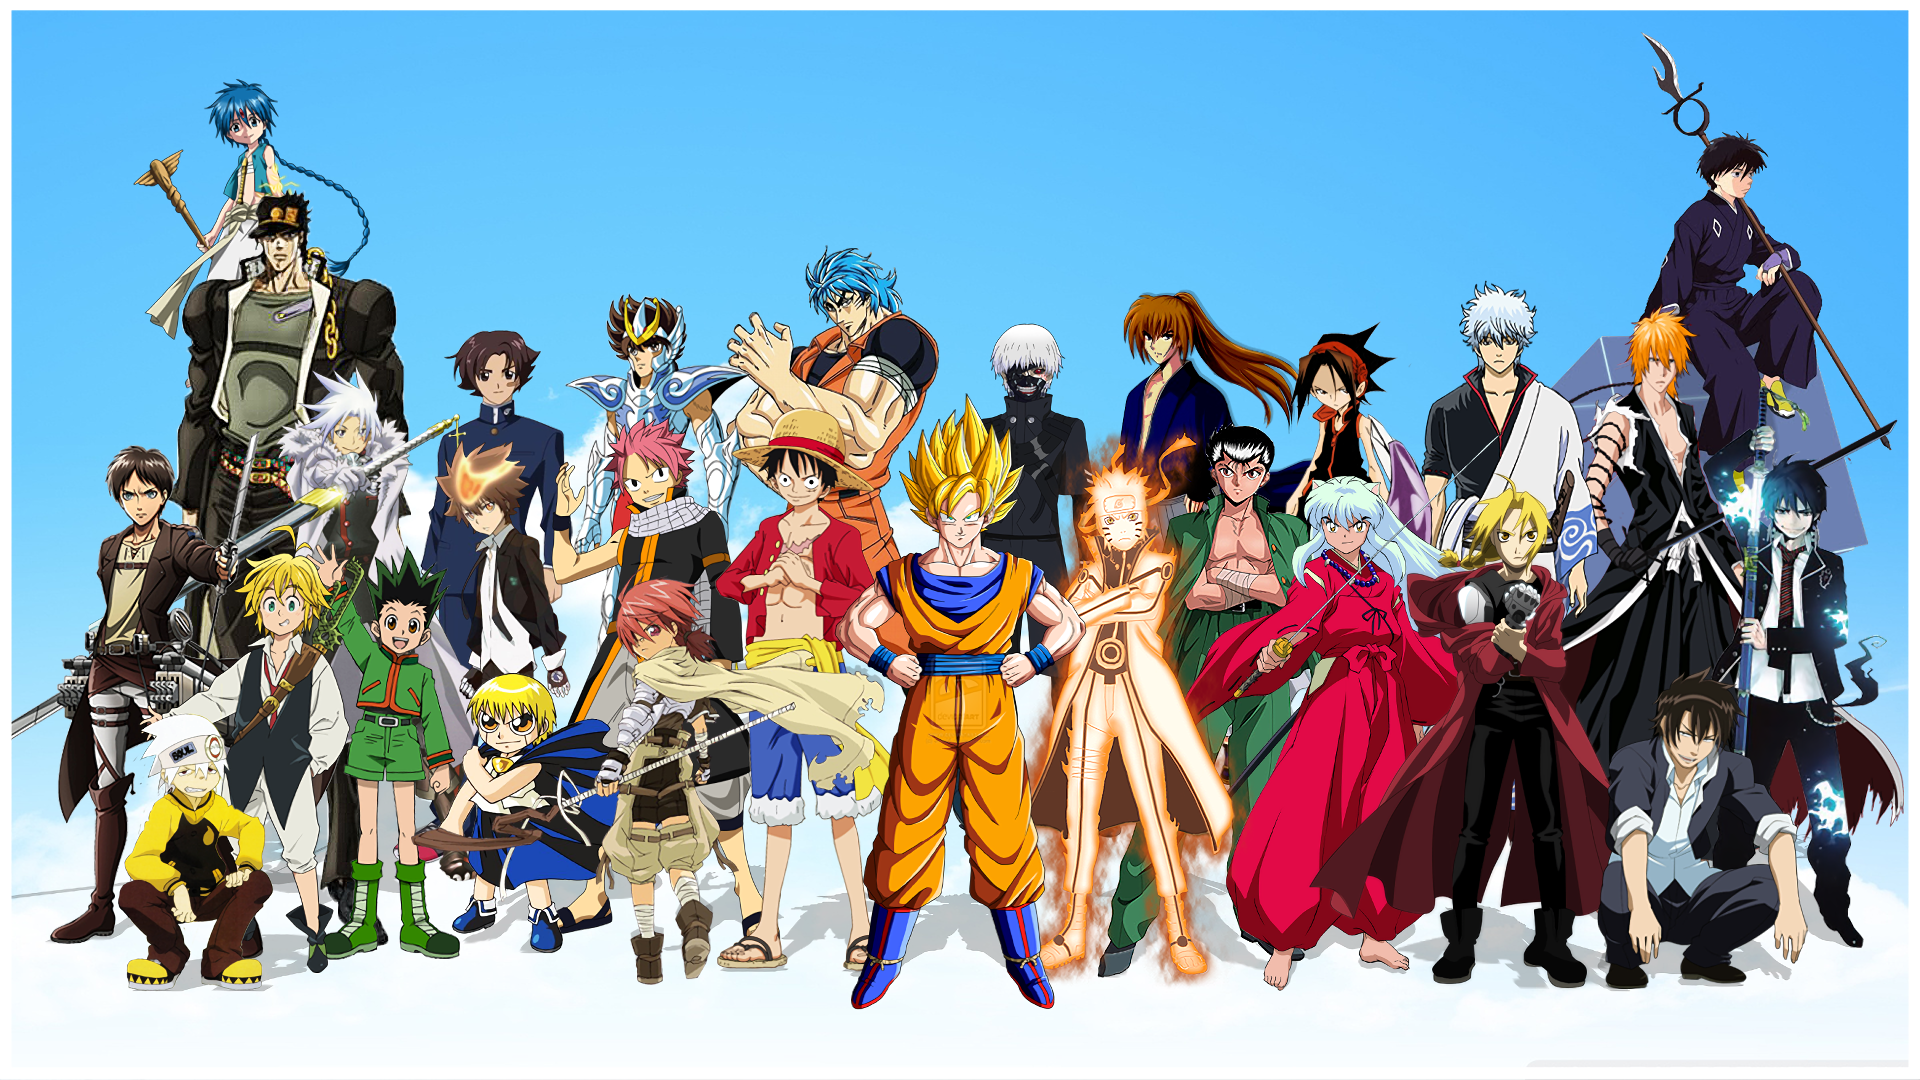 Anime - Crossover  Jojo's Bizarre Adventure One Piece Katekyō Hitman Reborn! The Seven Deadly Sins Nanatzu No Taizai Hunter × Hunter Attack on Titan Naruto Blue Exorcist Fairy Tail Edward Elric Magi: the labyrinth of magic Saint Seiya Shingeki No Kyojin Gon Freecss Zatch Bell Soul Eater Ao No Exorcist Tokyo Ghoul Anime Fullmetal Alchemist Bleach Dragon Ball Z Natsu Dragneel Ken Kaneki Gintoki Sakata Ichigo Kurosaki Rin Okumura Dragon Ball Goku Monkey D. Luffy Gintama InuYasha Naruto Uzumaki Toriko (Toriko) Eren Yeager Kenichi: The Mightiest Disciple Kenshin Himura Wallpaper